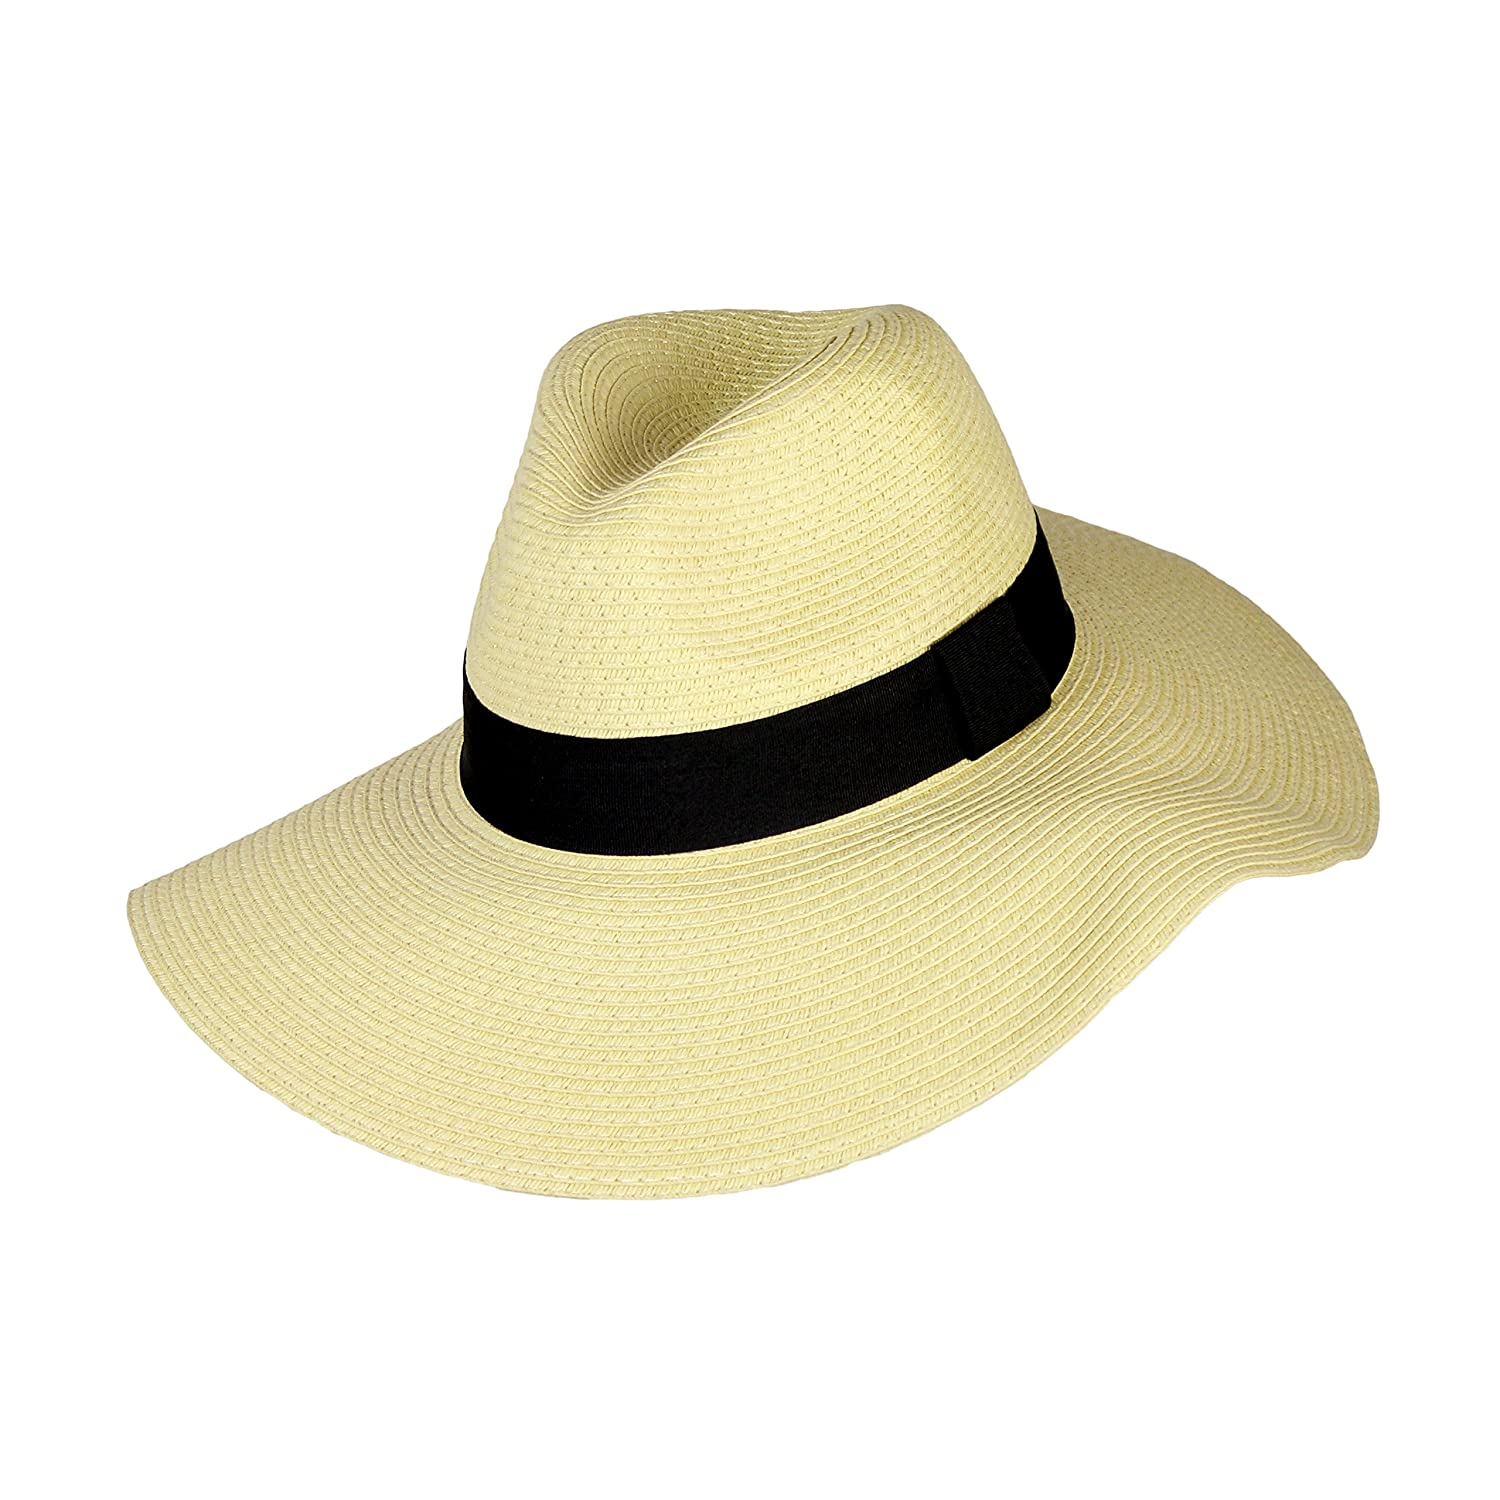 UPF 50+ Summer Large Brim Straw Panama Sun Hat for Women- Adjustable Boho  Fedora with Band (Sand) at Amazon Women s Clothing store  1dac408b6b1